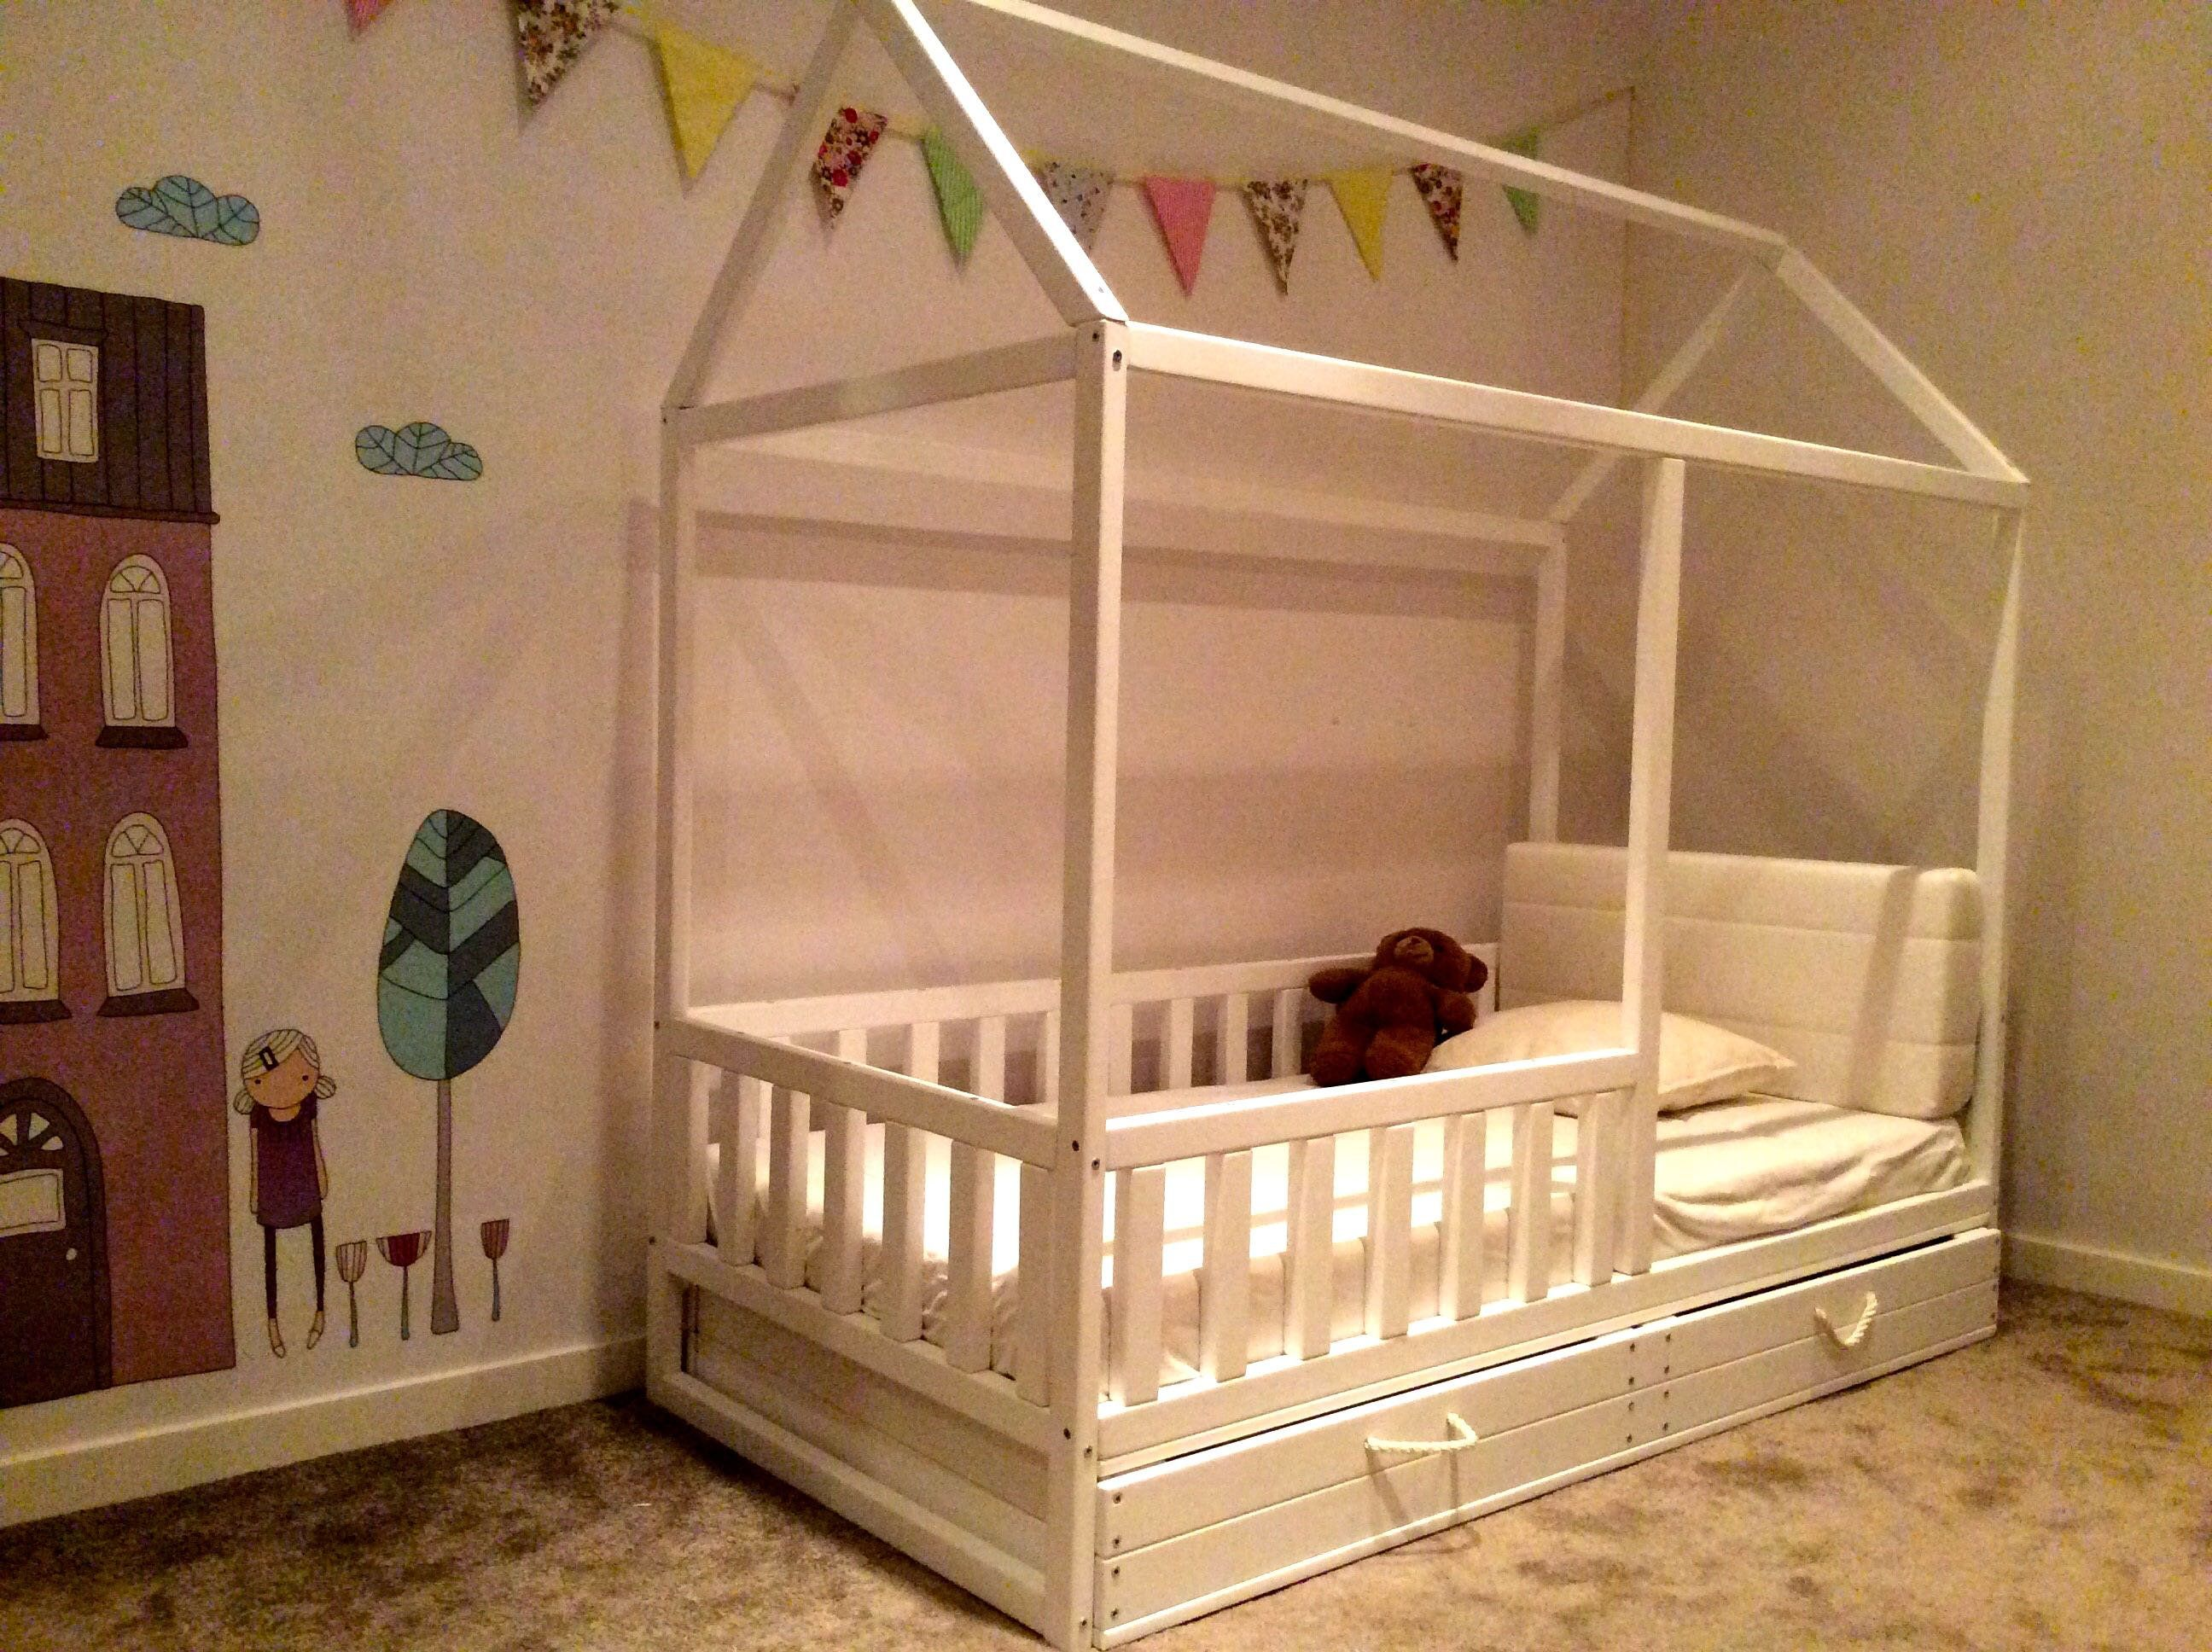 Painted Toddler Bed Children Bed Montessori Bed Kid Bed